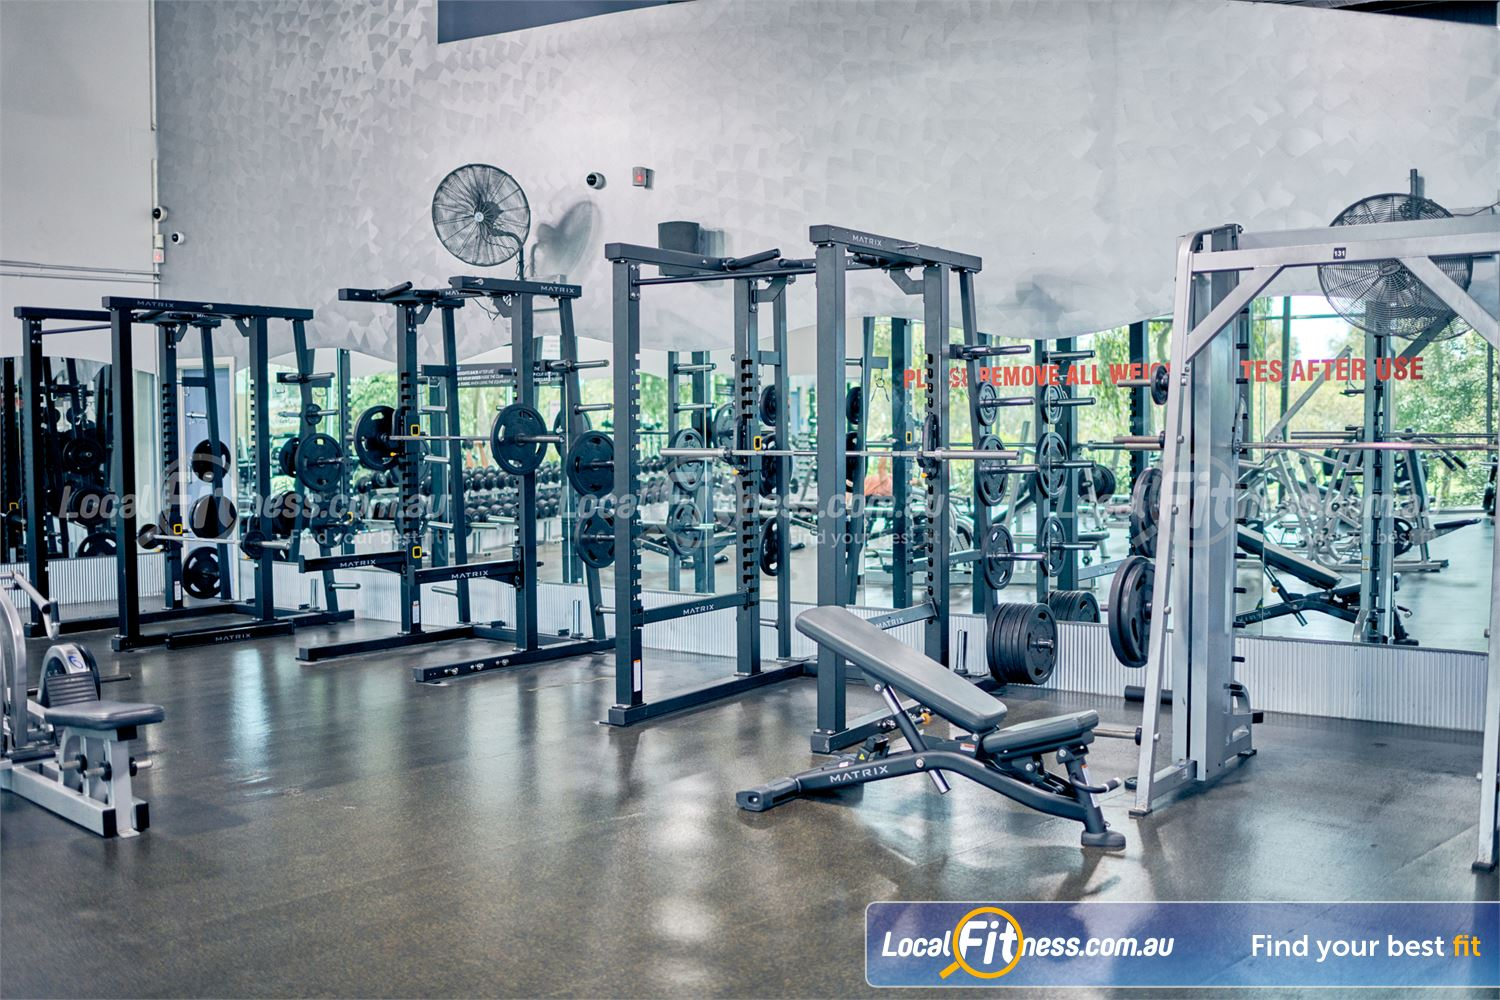 Search for LA fitness locations near you.